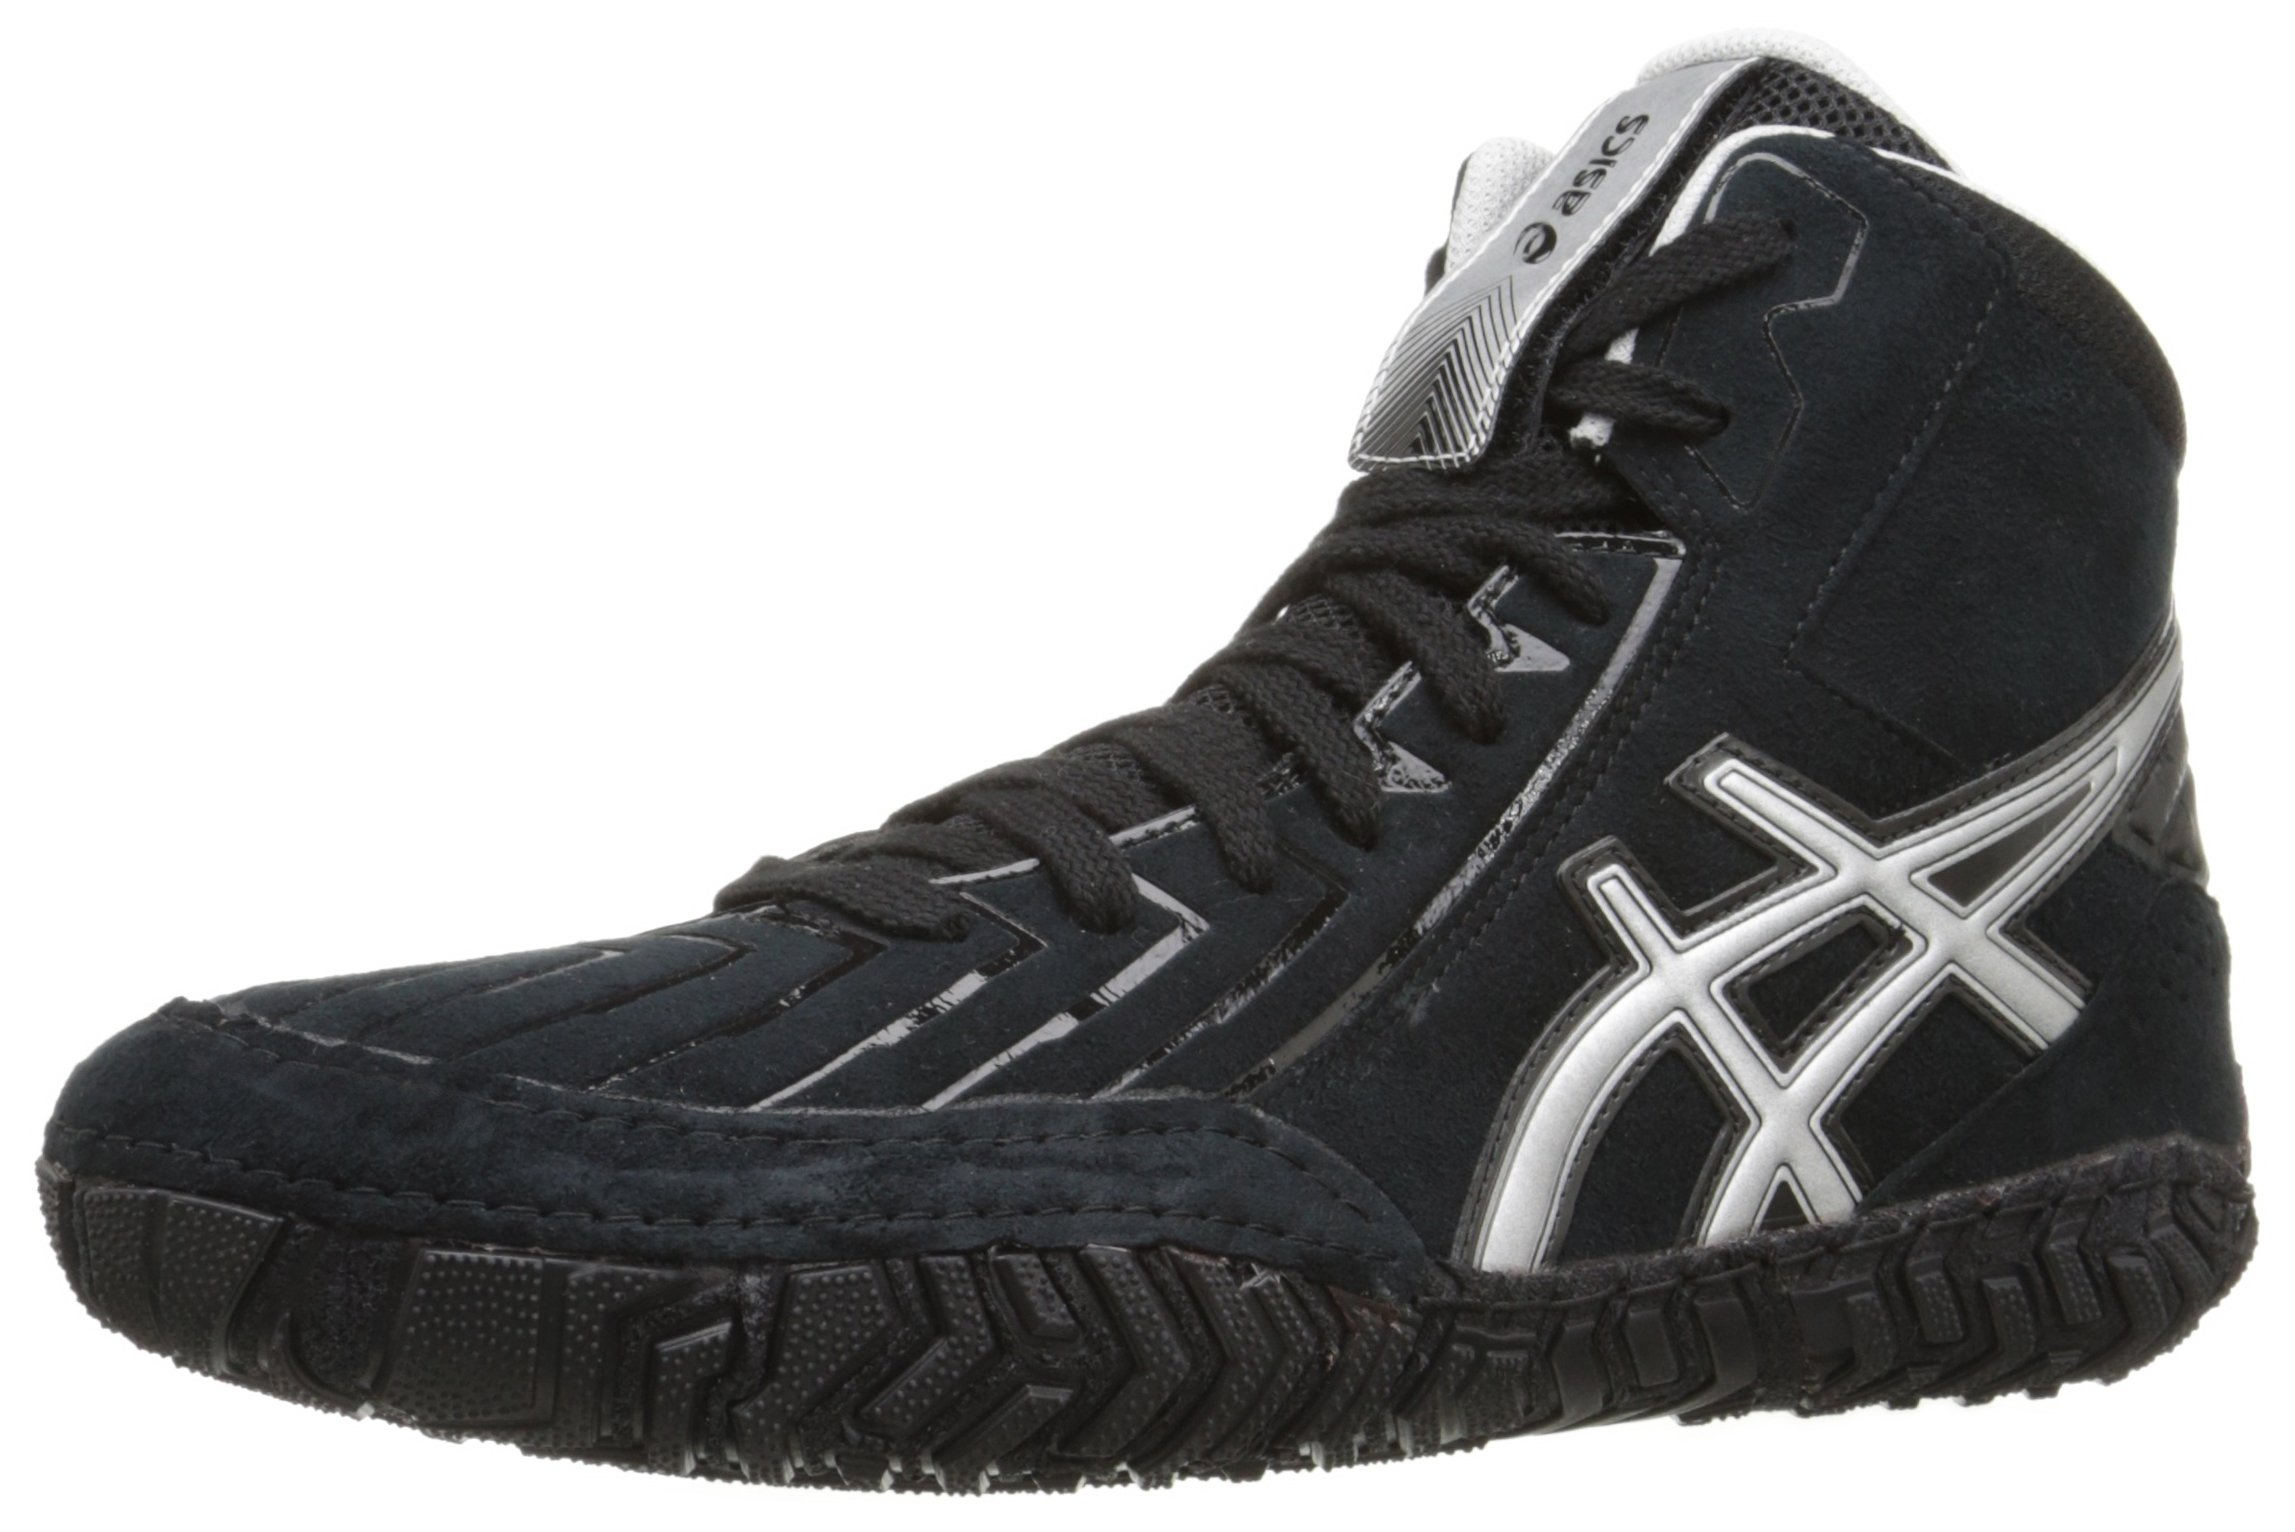 ASICS Men's Aggressor 3 Wrestling Shoe, Black/Silver, 6.5 M US